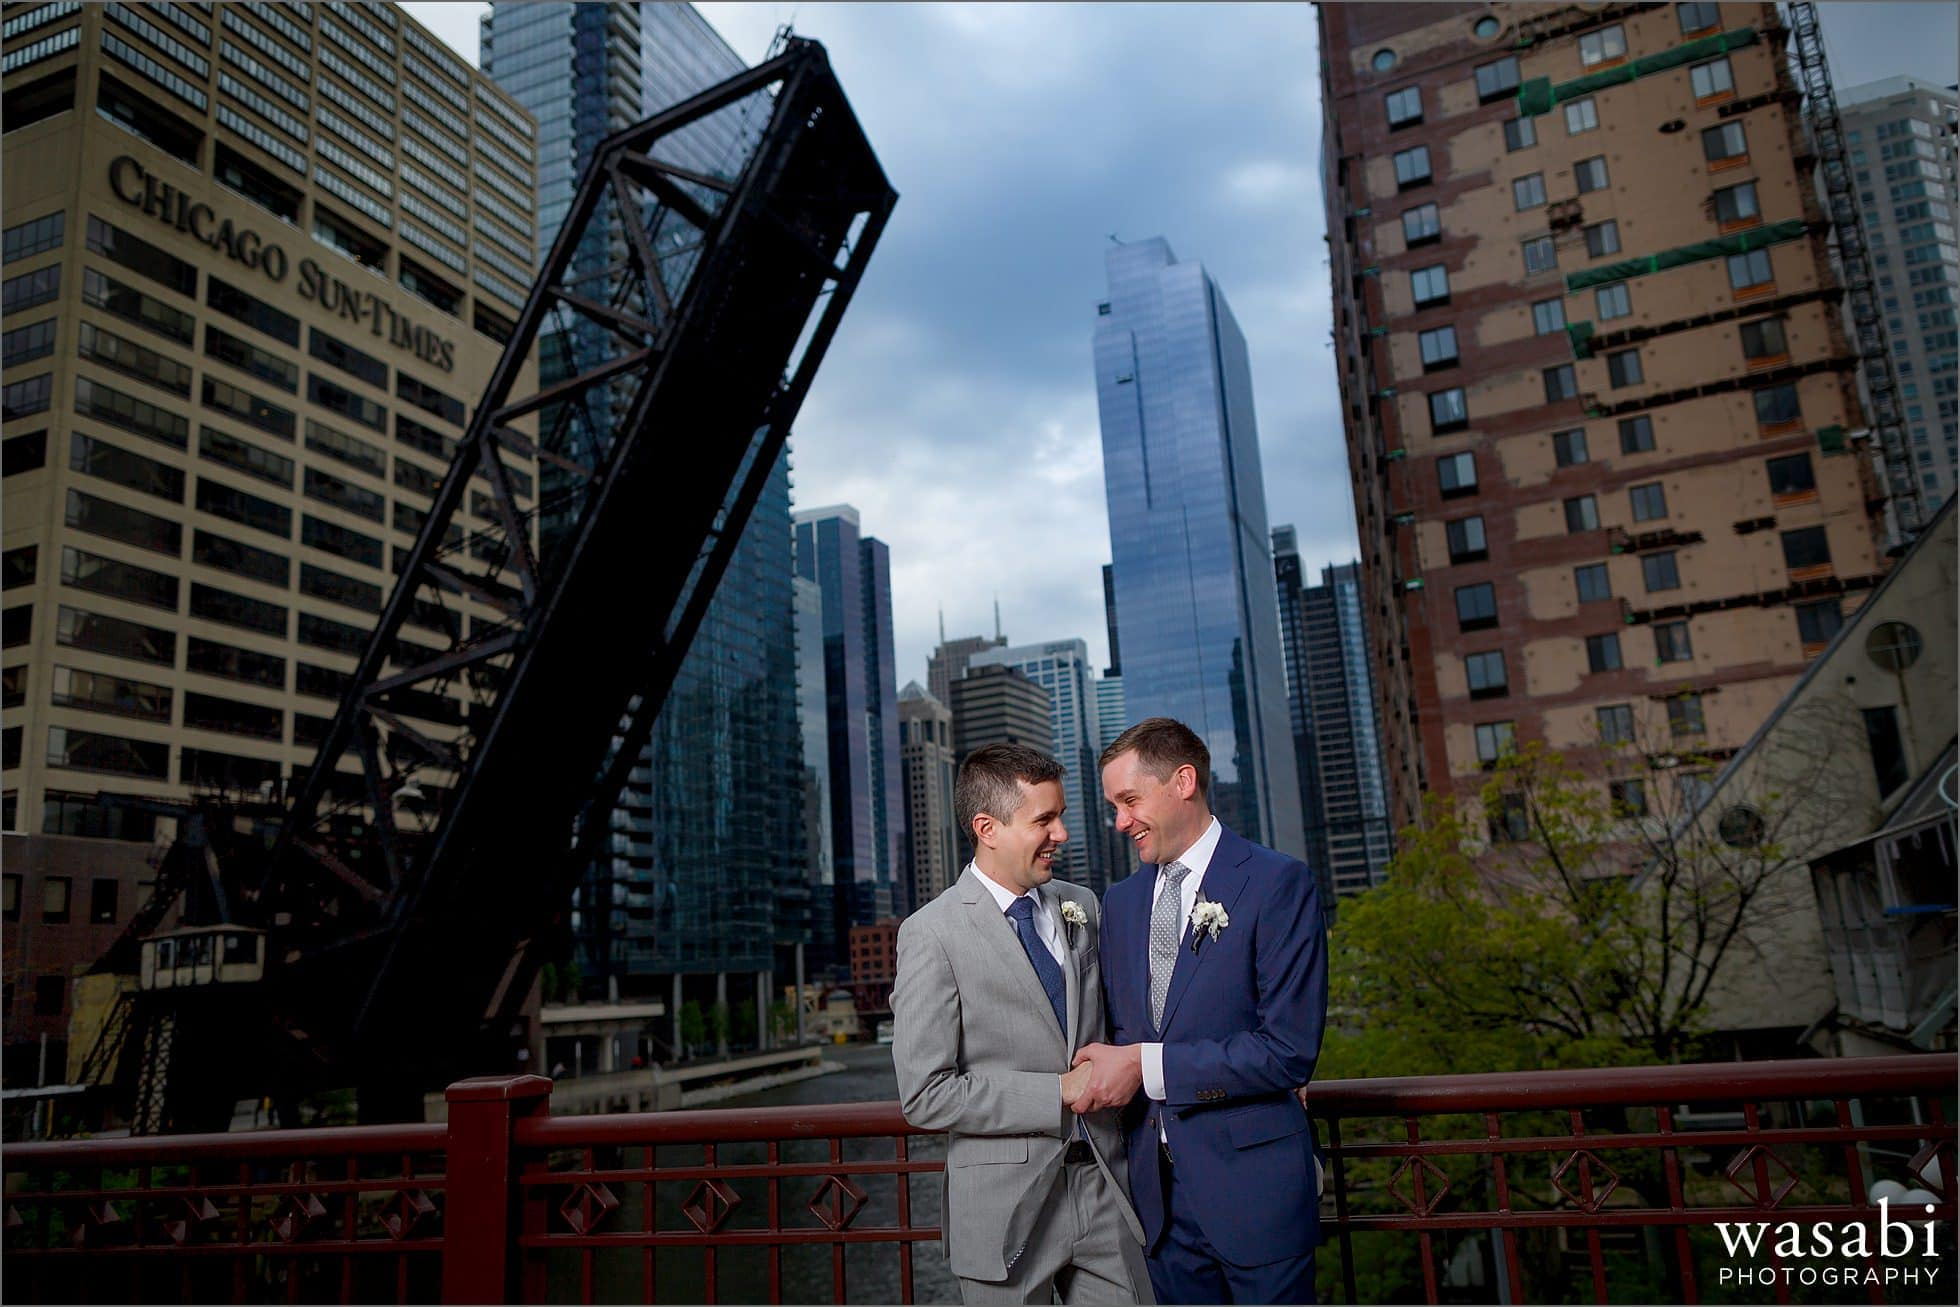 grooms hold hands during a wedding portrait on Kinzie Street Bridge with the Chicago skyline in the background